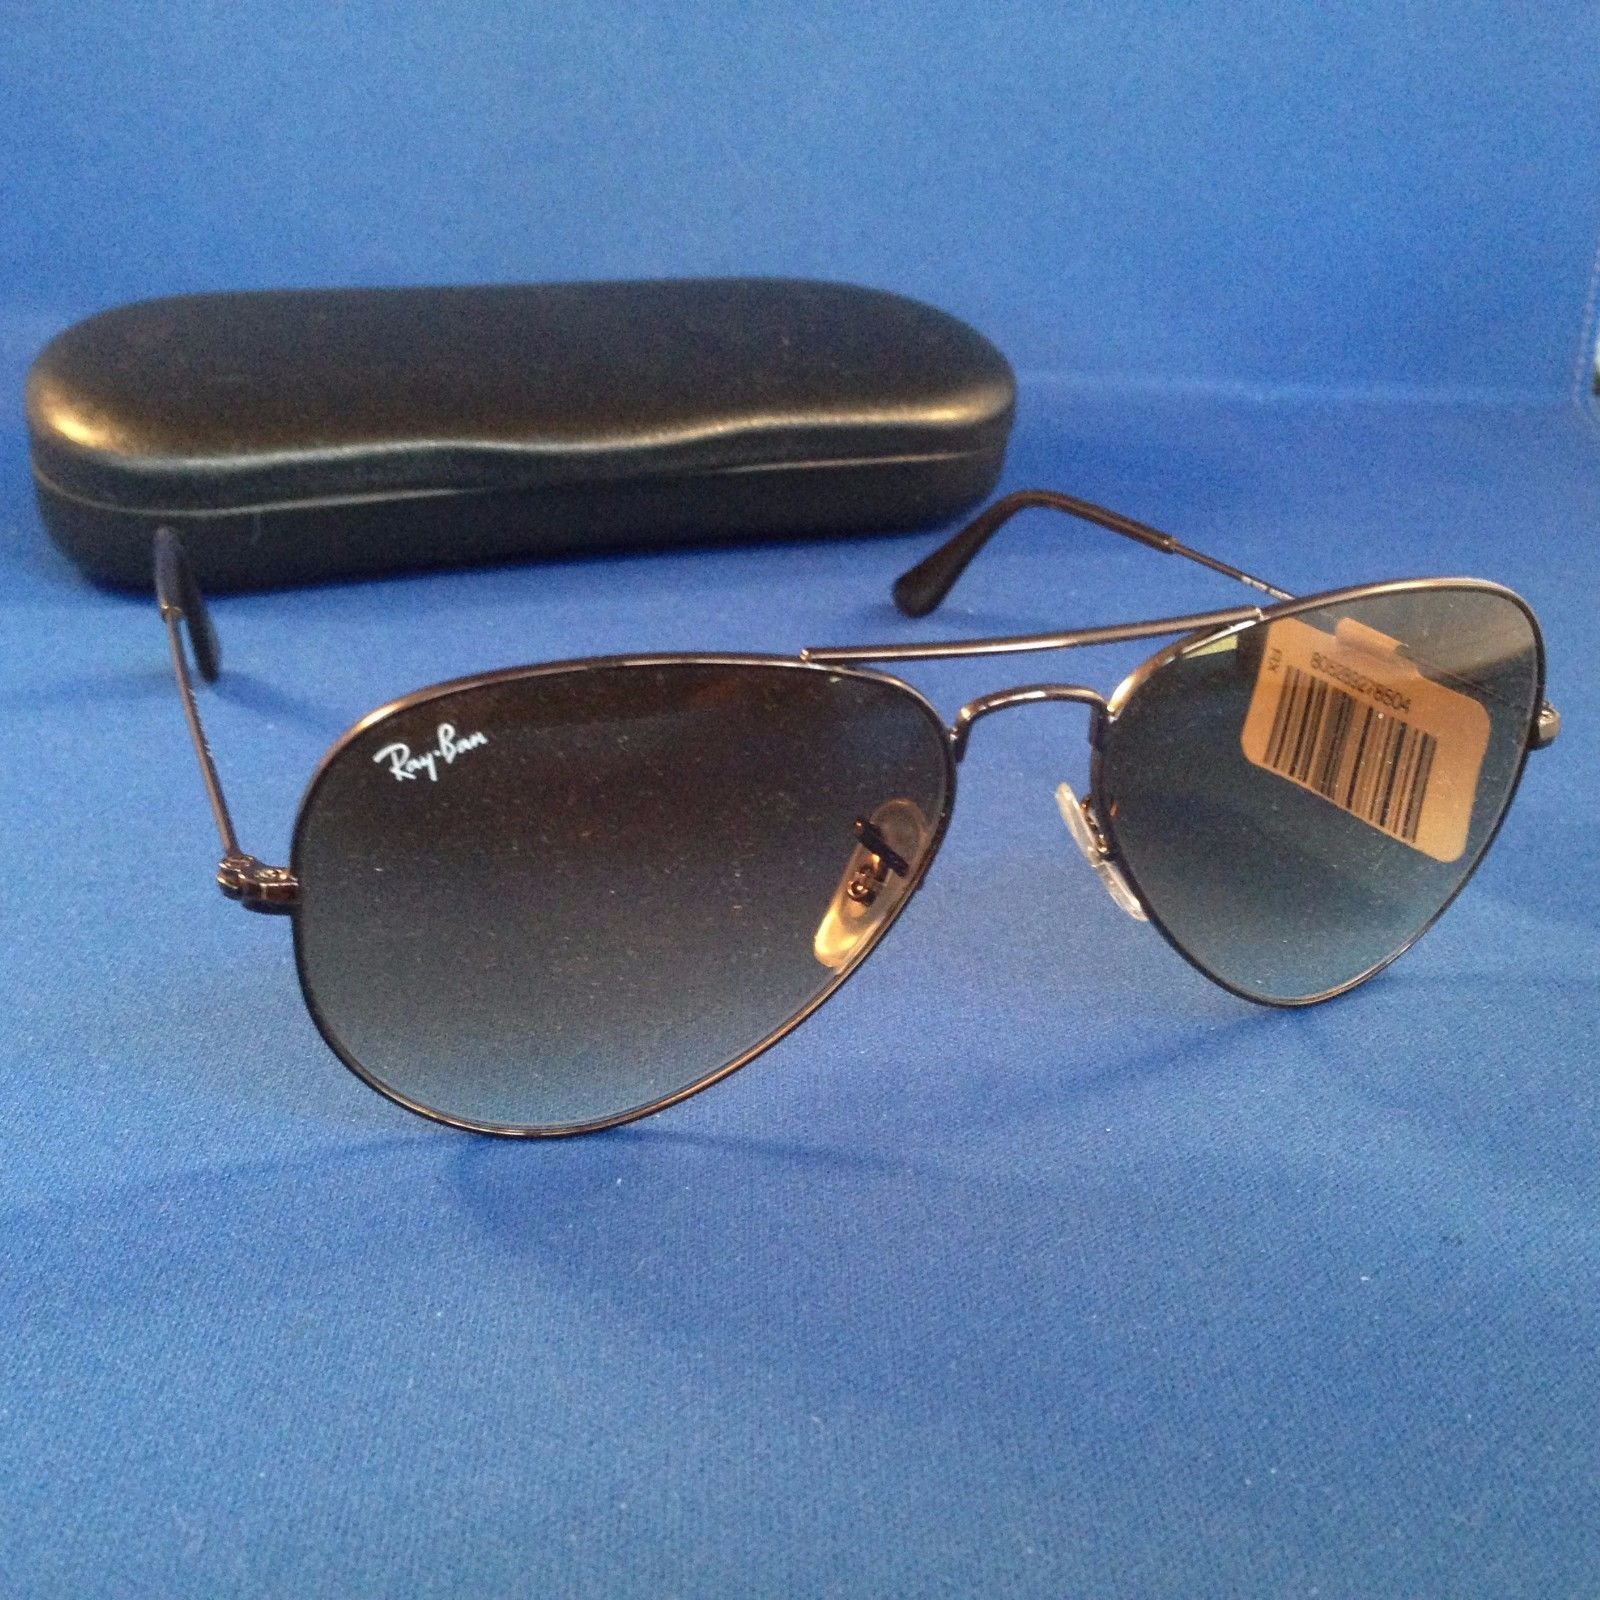 24480cdec8 Rayban Aviator RB3025 014 51 Small 55 14 2N Gold Frame Light Brown Gradient